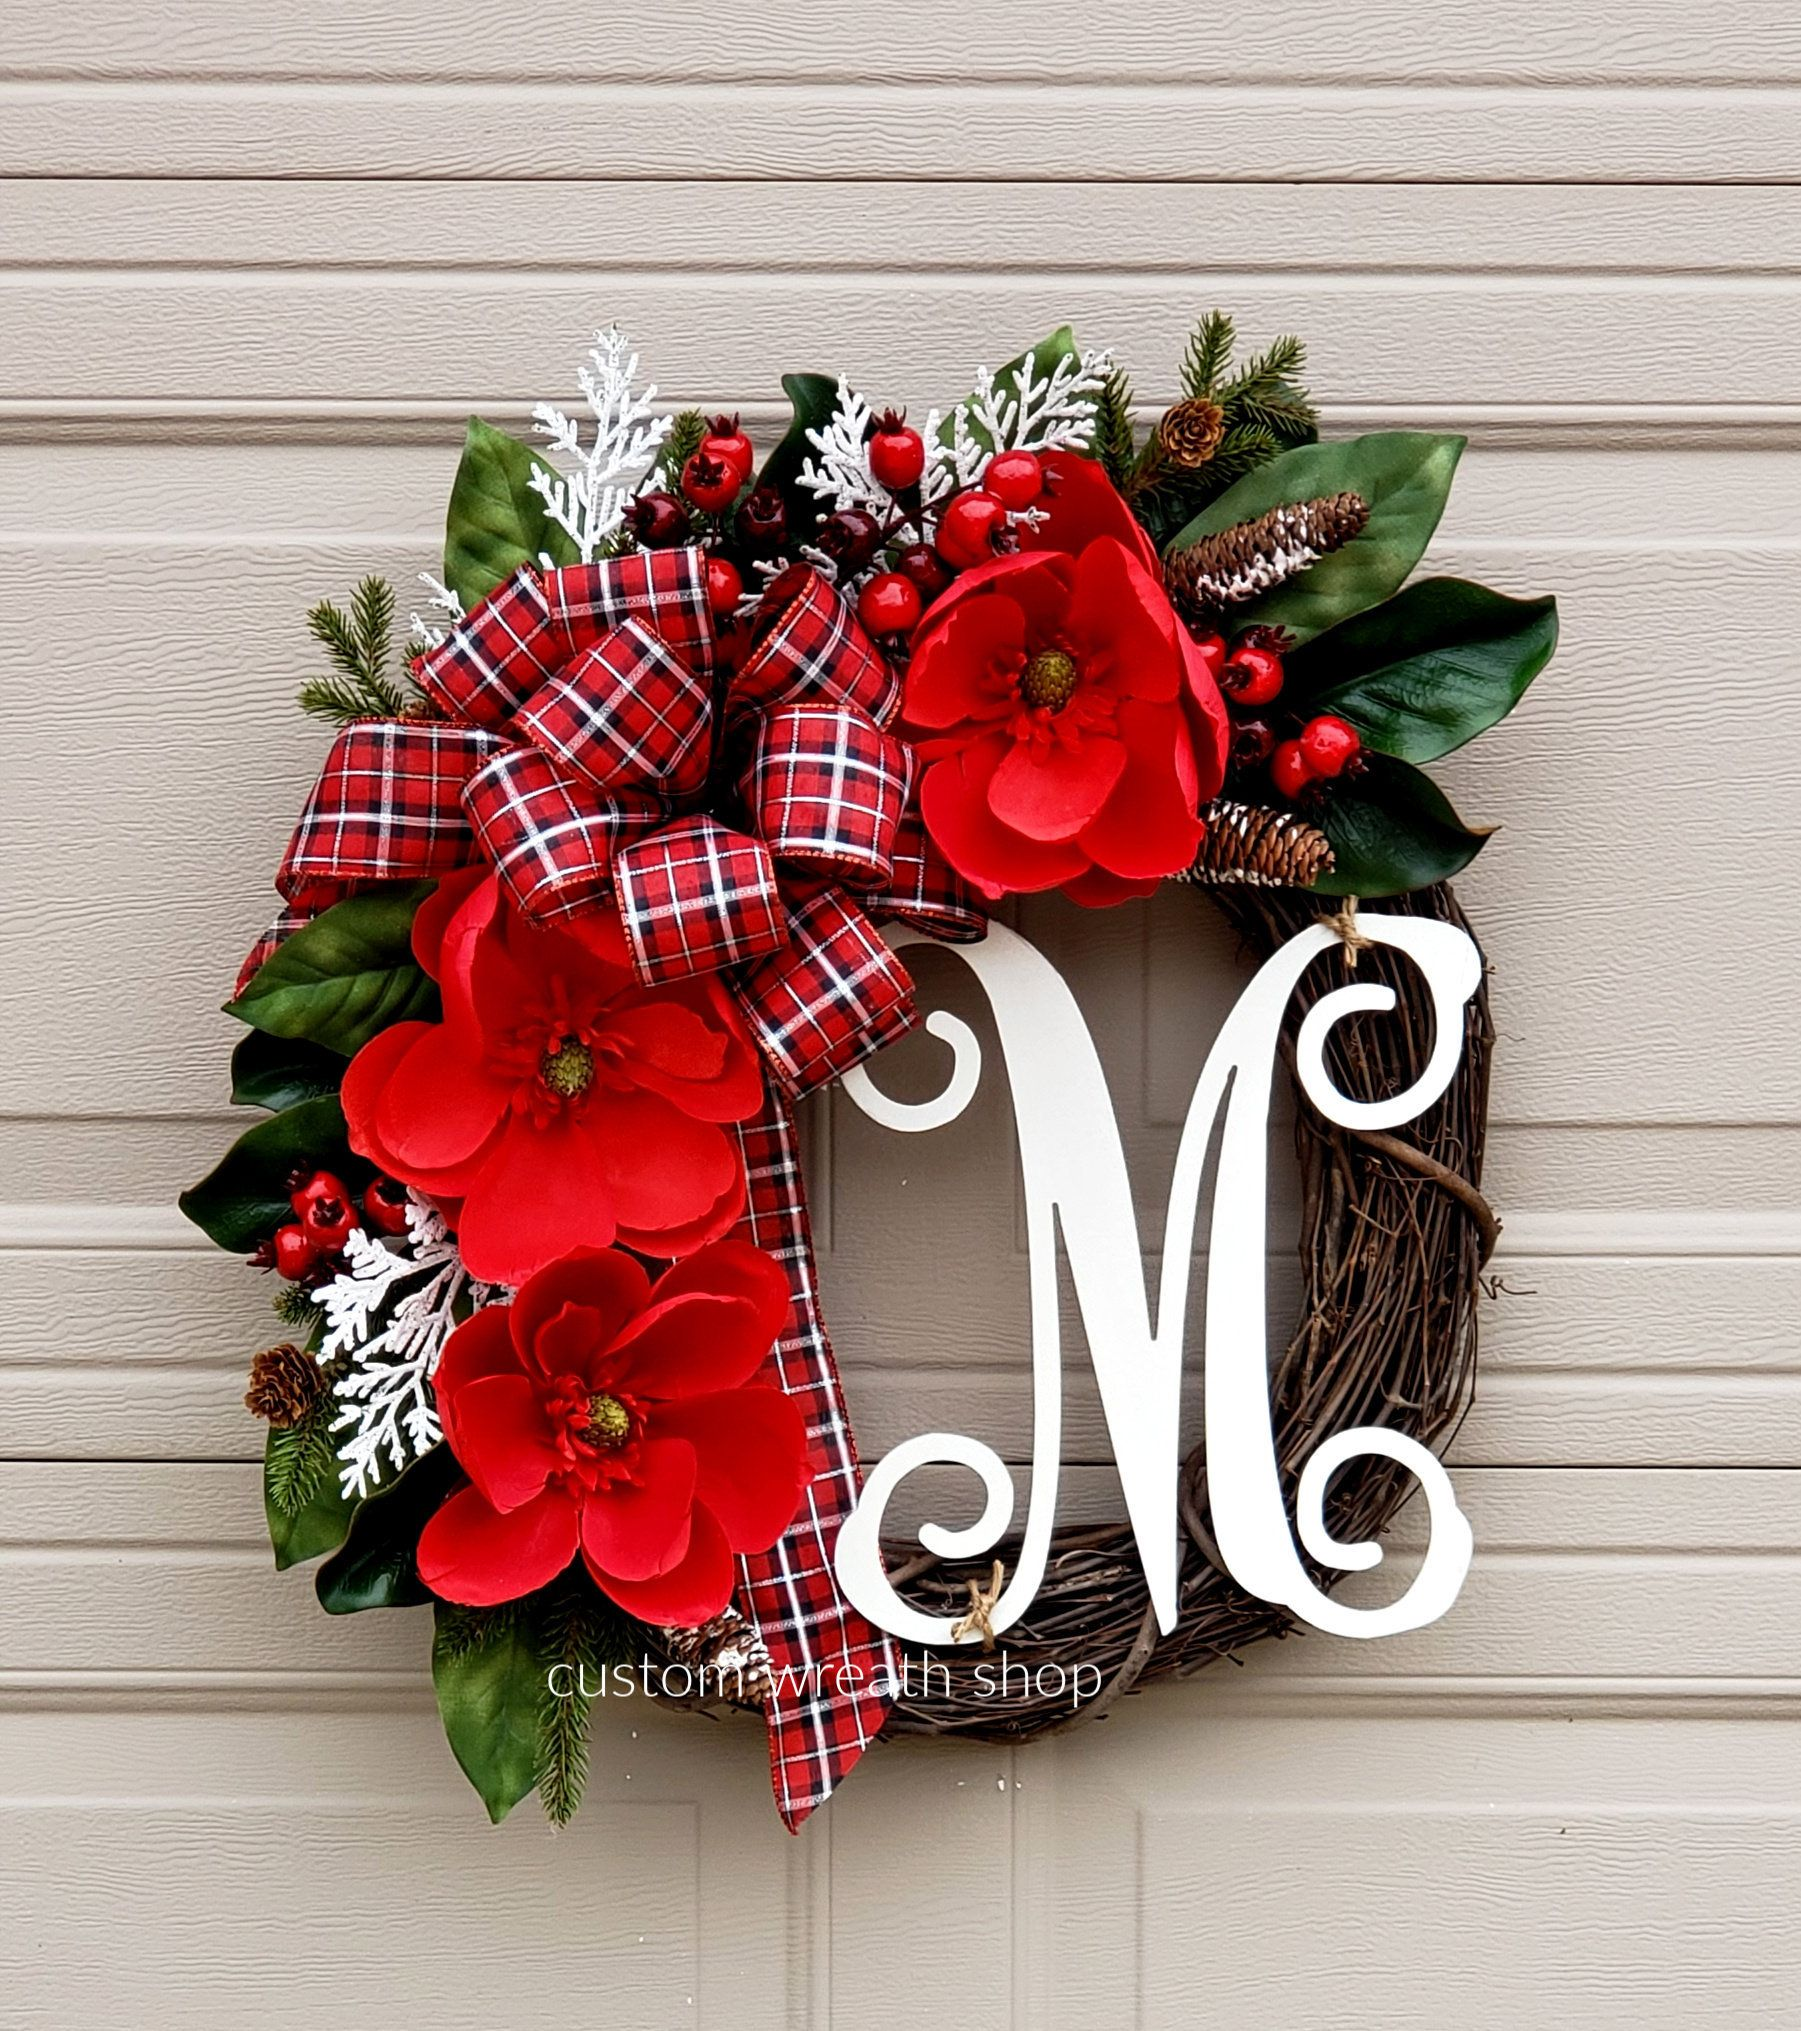 Photo of READ TO SHIP Christmas Wreath, Red Magnolia Wreath, Wreaths for Winter, Buffalo Plaid Wreath, Holiday Decor for Door, Berries Wreath